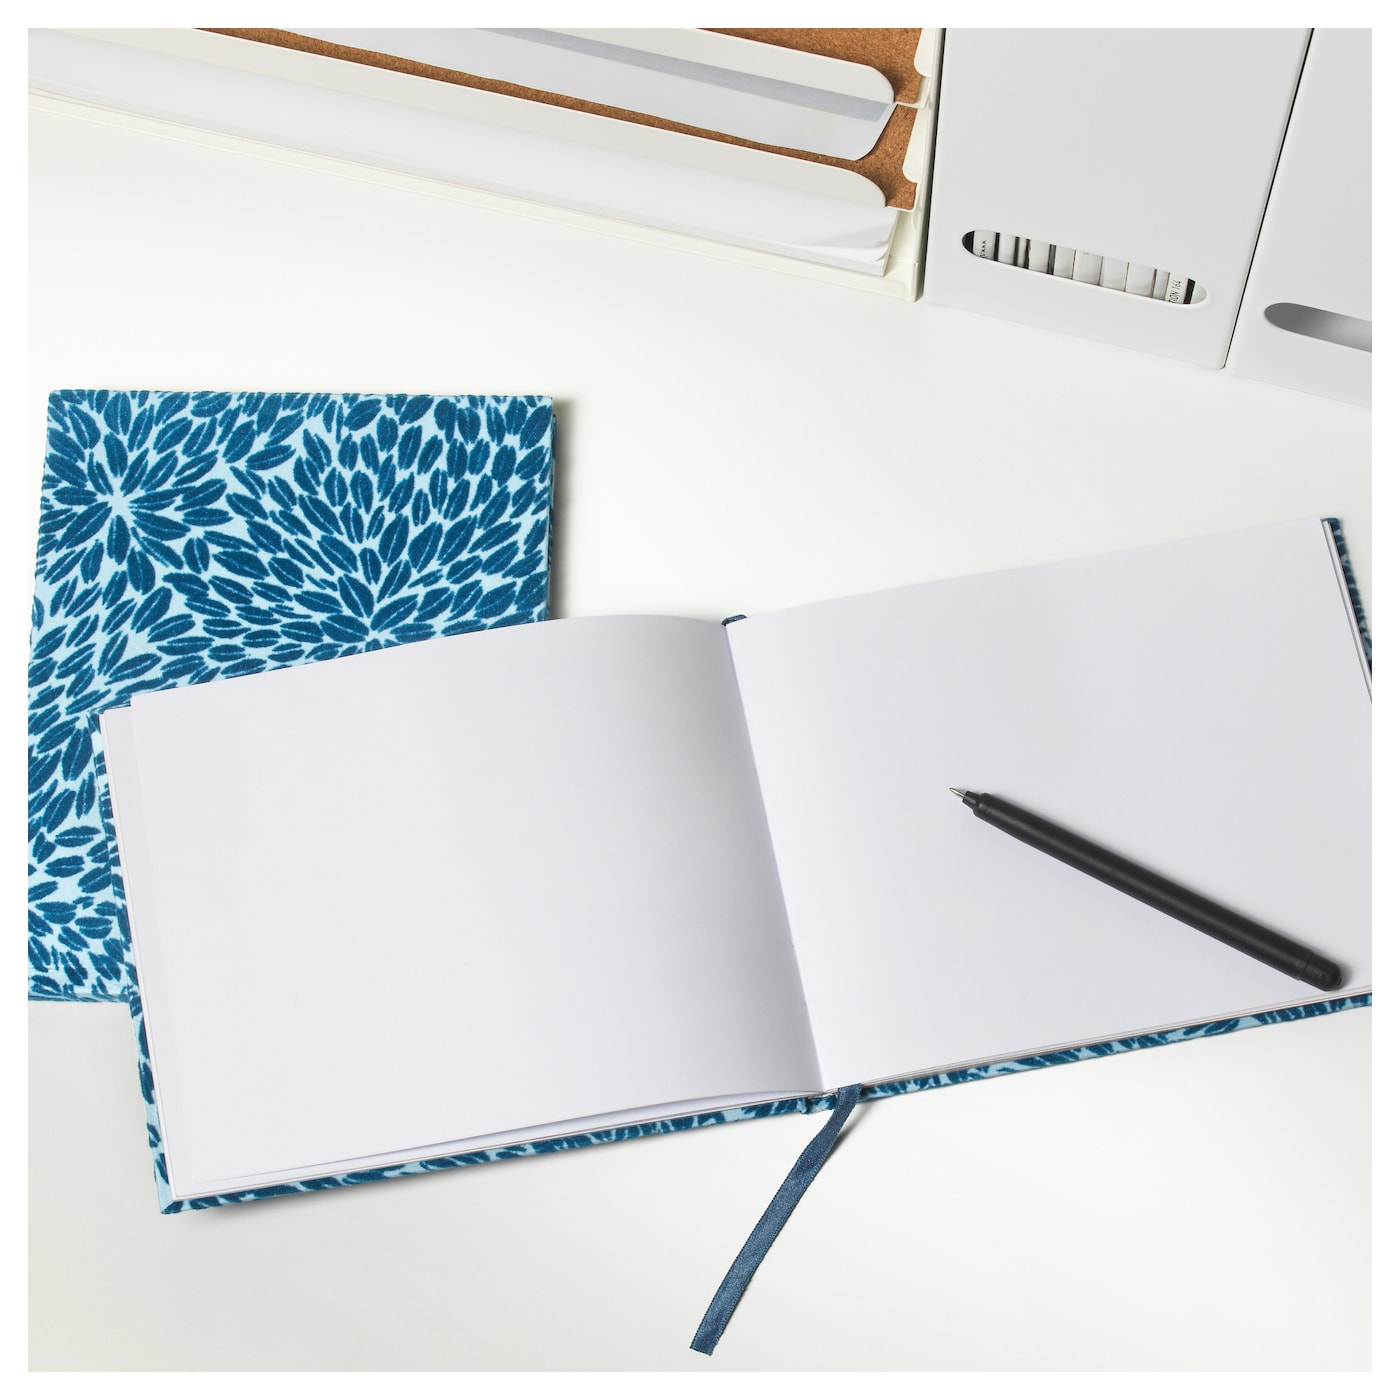 IKEA EKLOG note-book